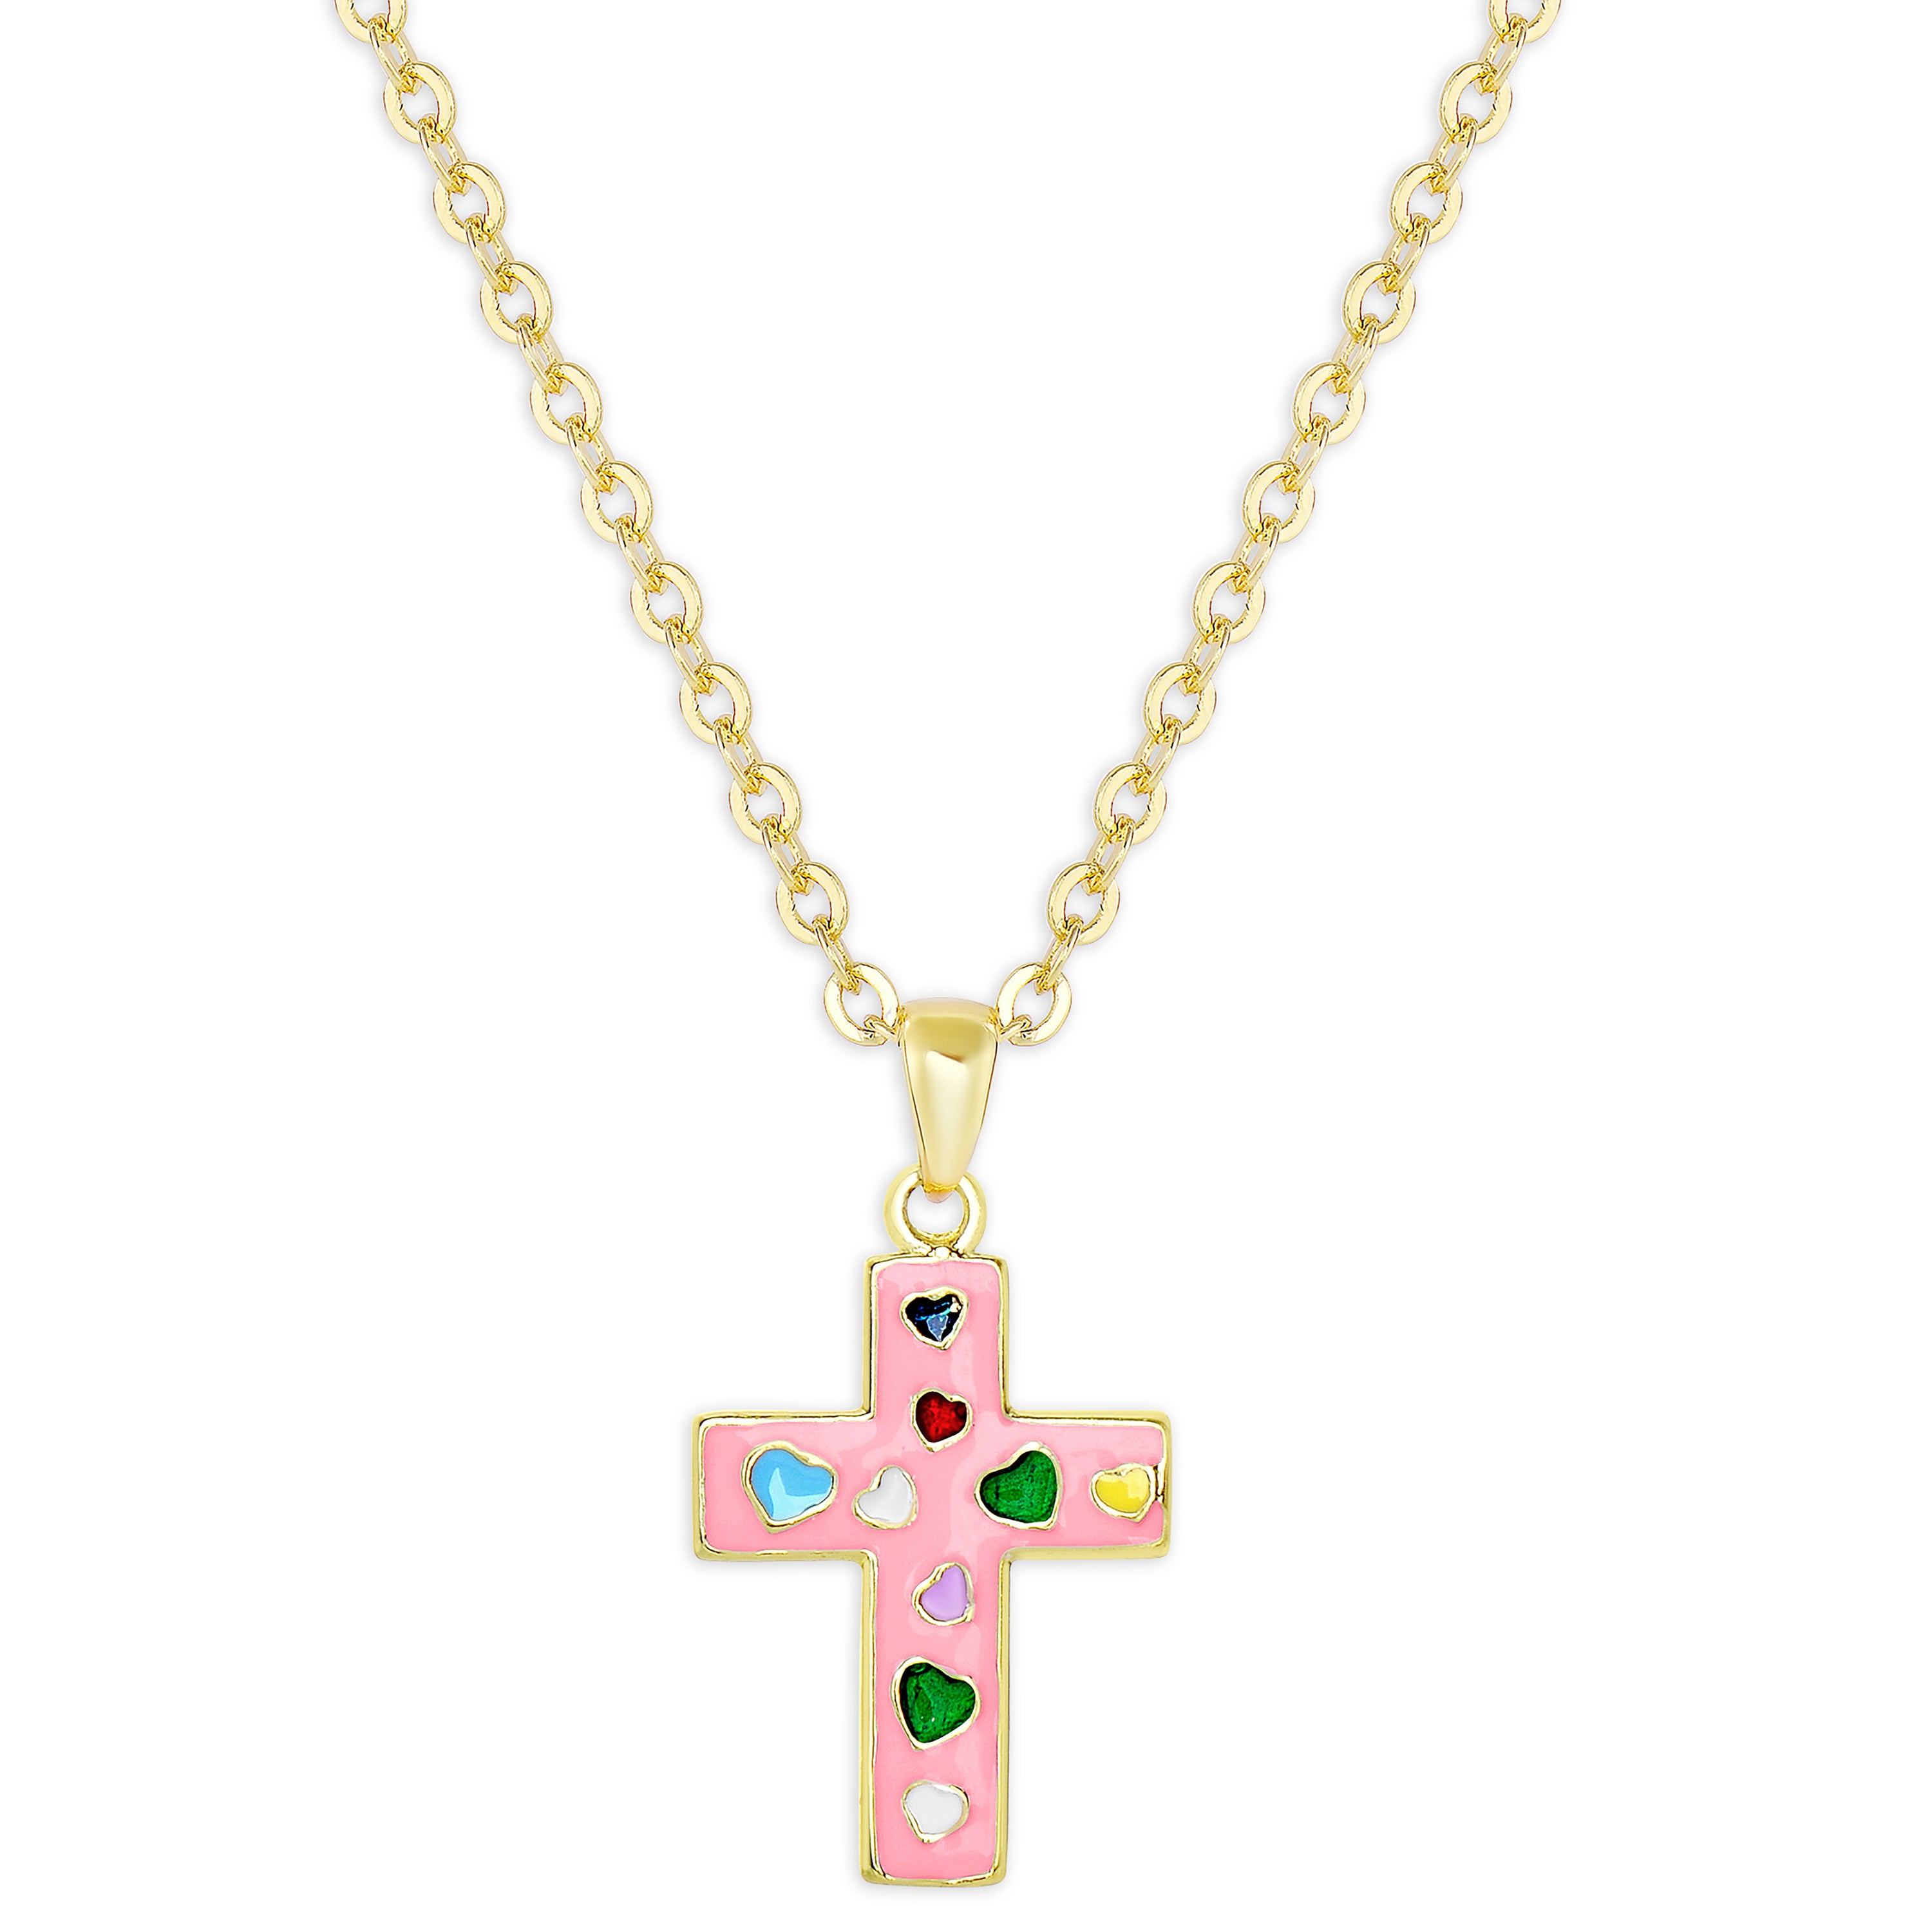 56916164e Molly and Emma Gold Over Silver Pink Enamel Cross Necklace and Ball Stud  Earrings Set